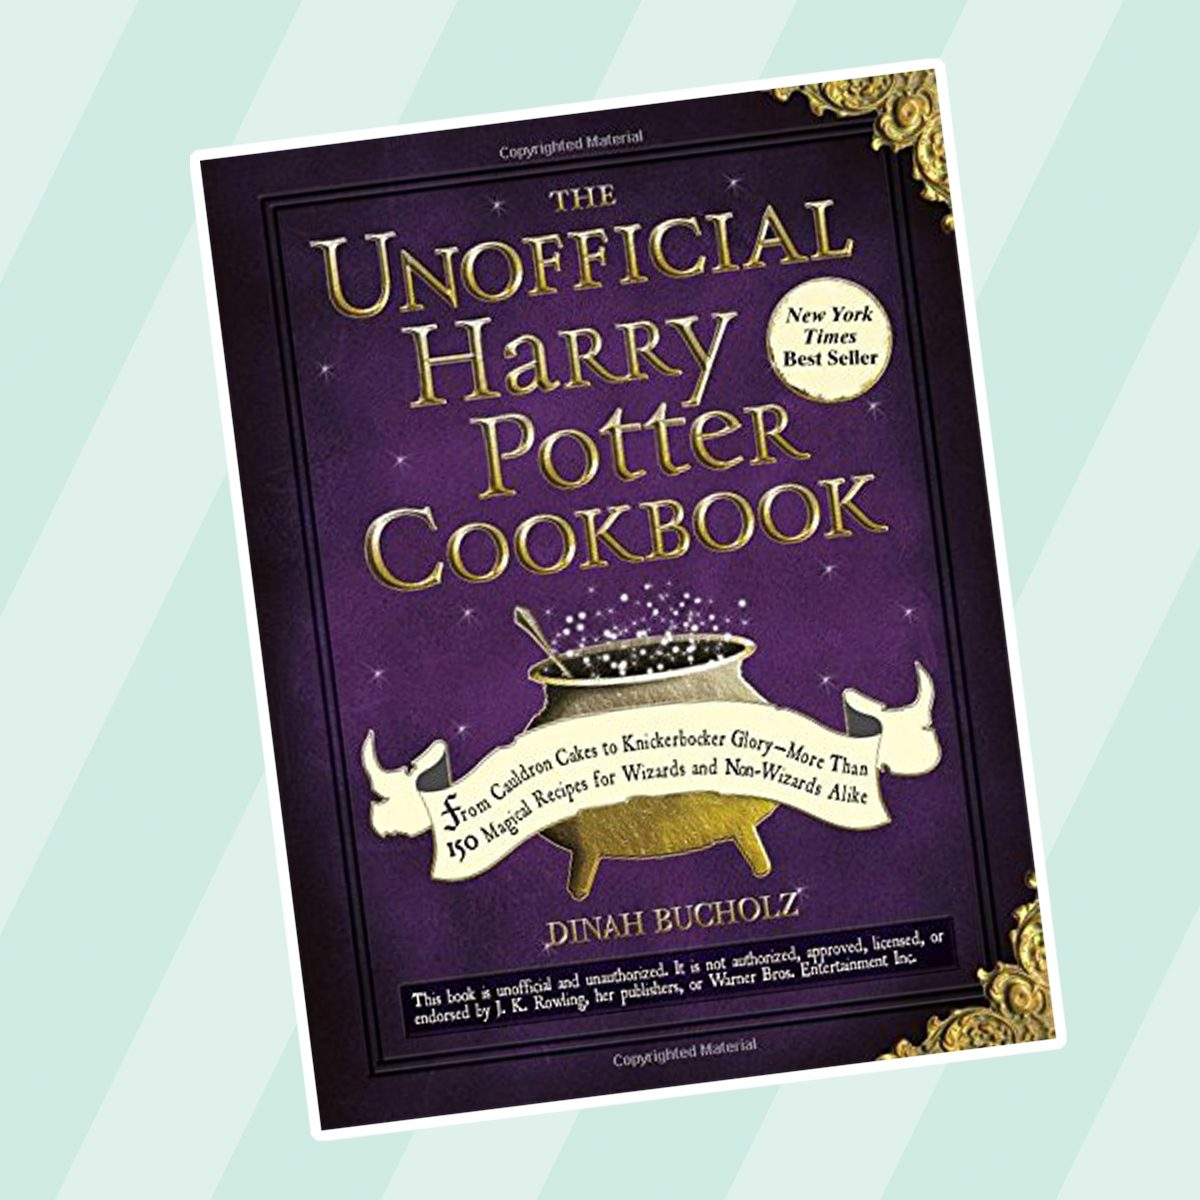 he Unofficial Harry Potter Cookbook: From Cauldron Cakes to Knickerbocker Glory--More Than 150 Magical Recipes for Wizards and Non-Wizards Alike (Unofficial Cookbook)